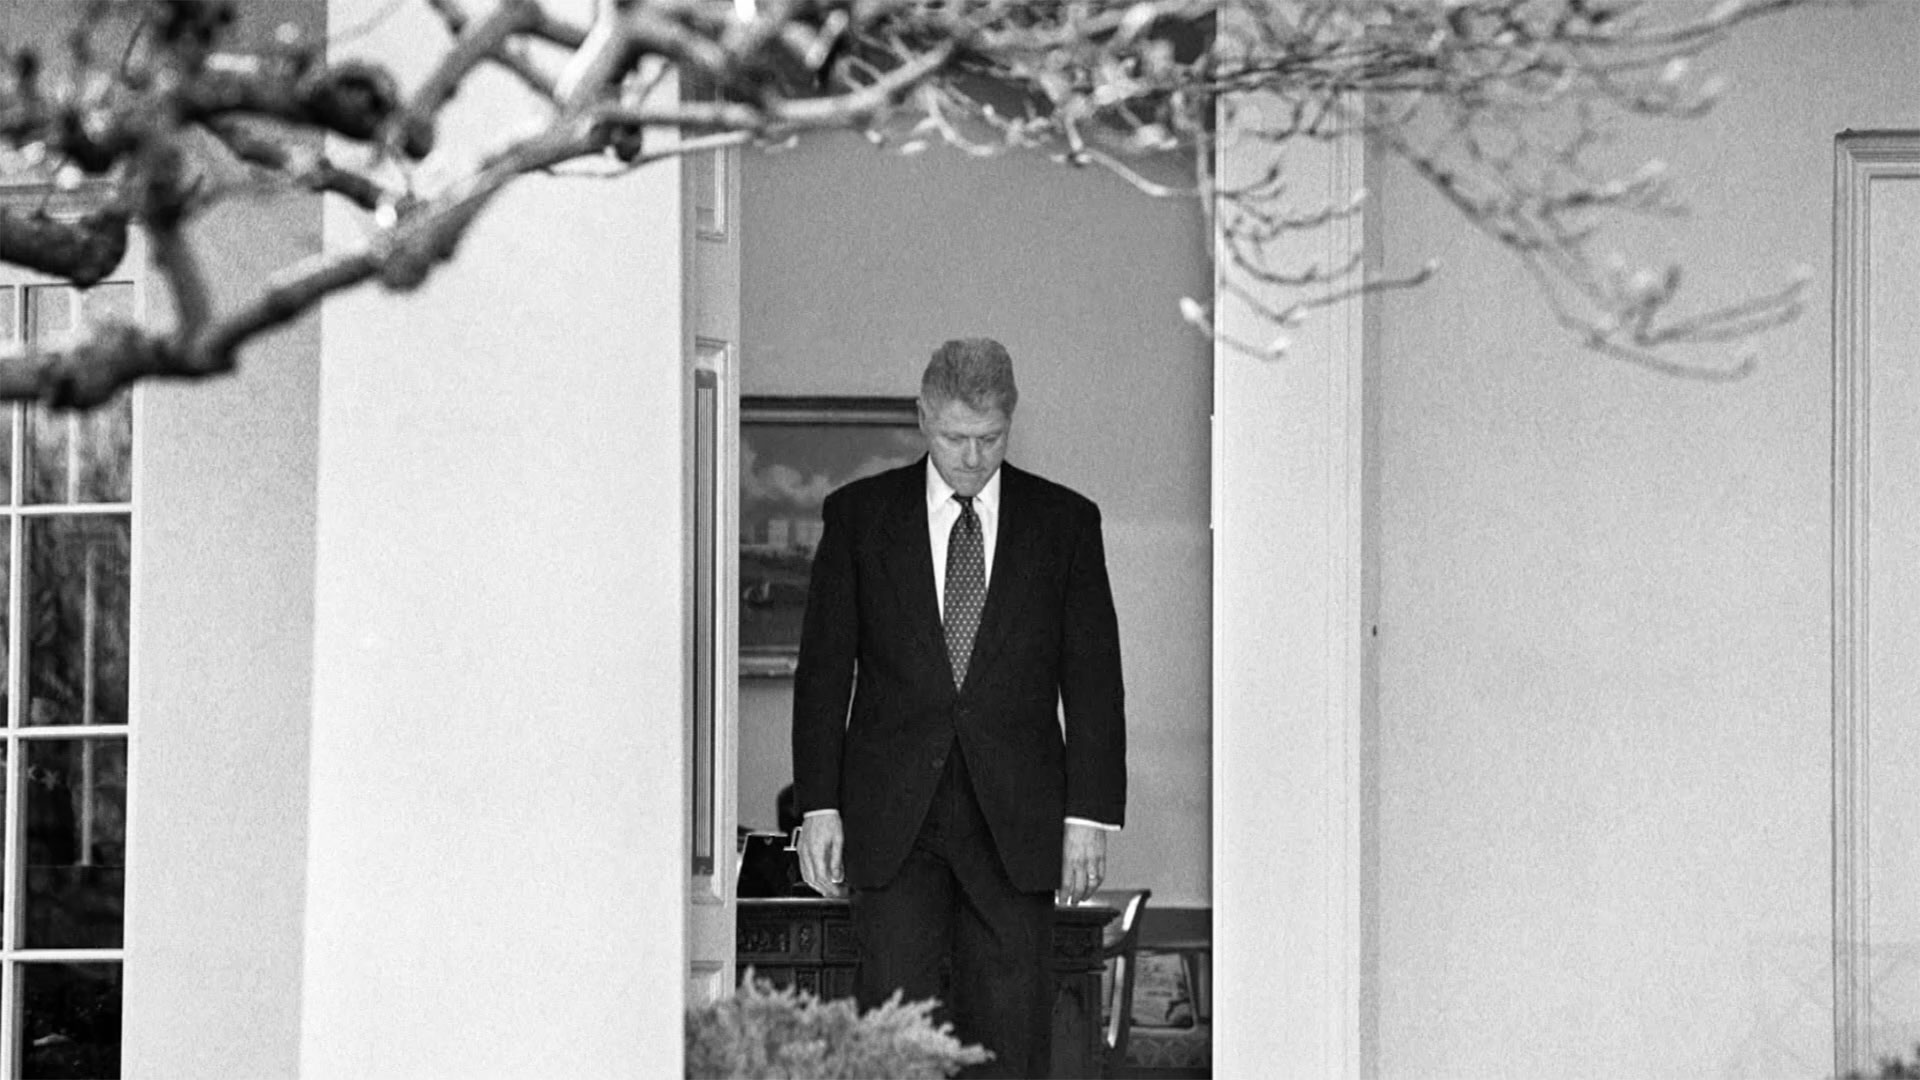 President Clinton walking to the podium to deliver a short statement on the impeachment inquiry.